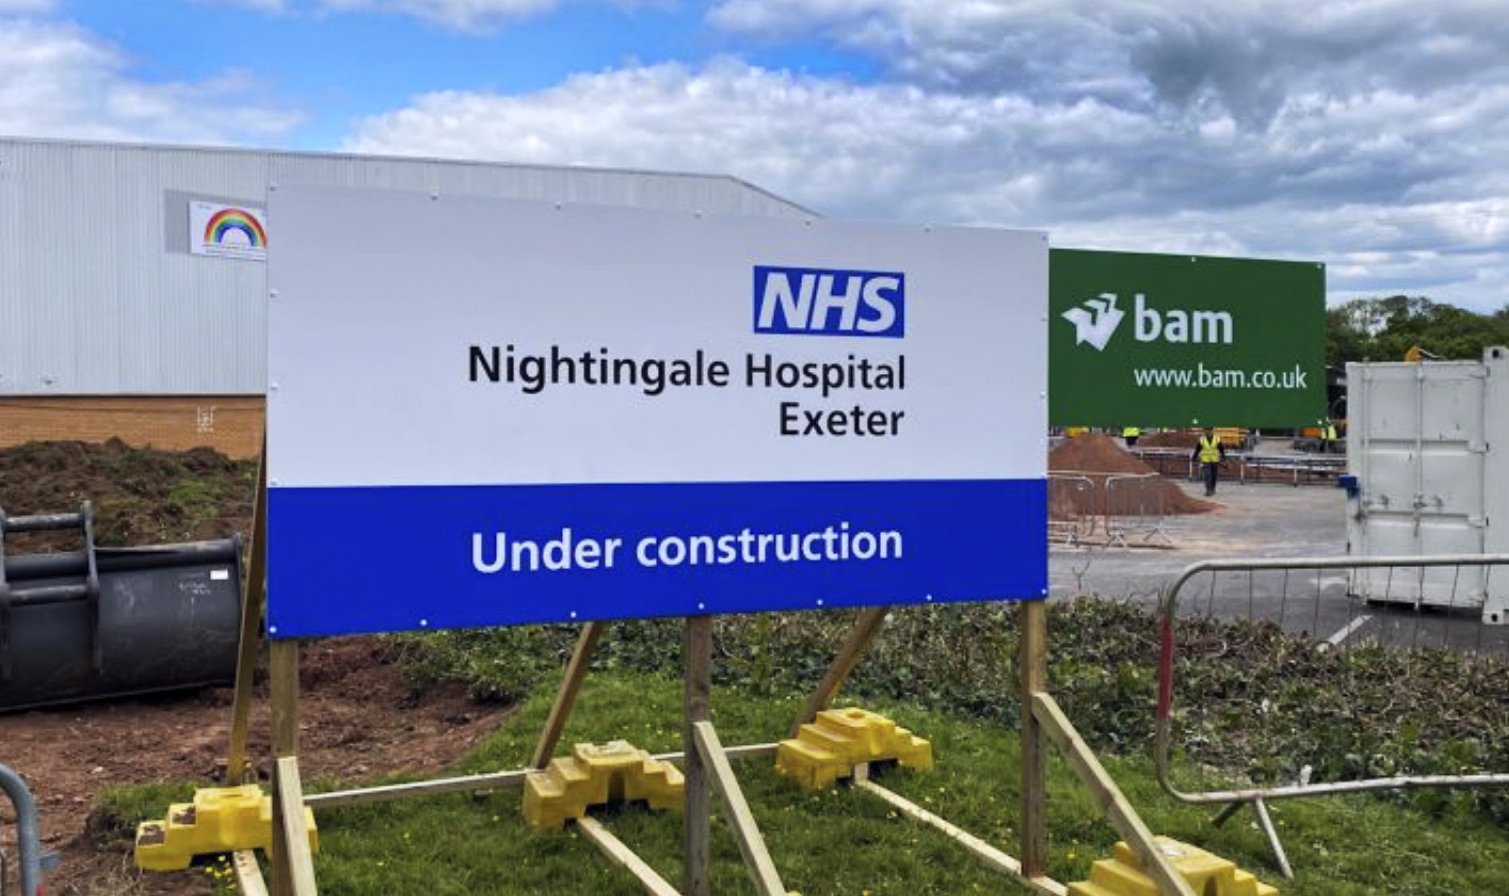 bam NHS nightingale exeter construction cleaning